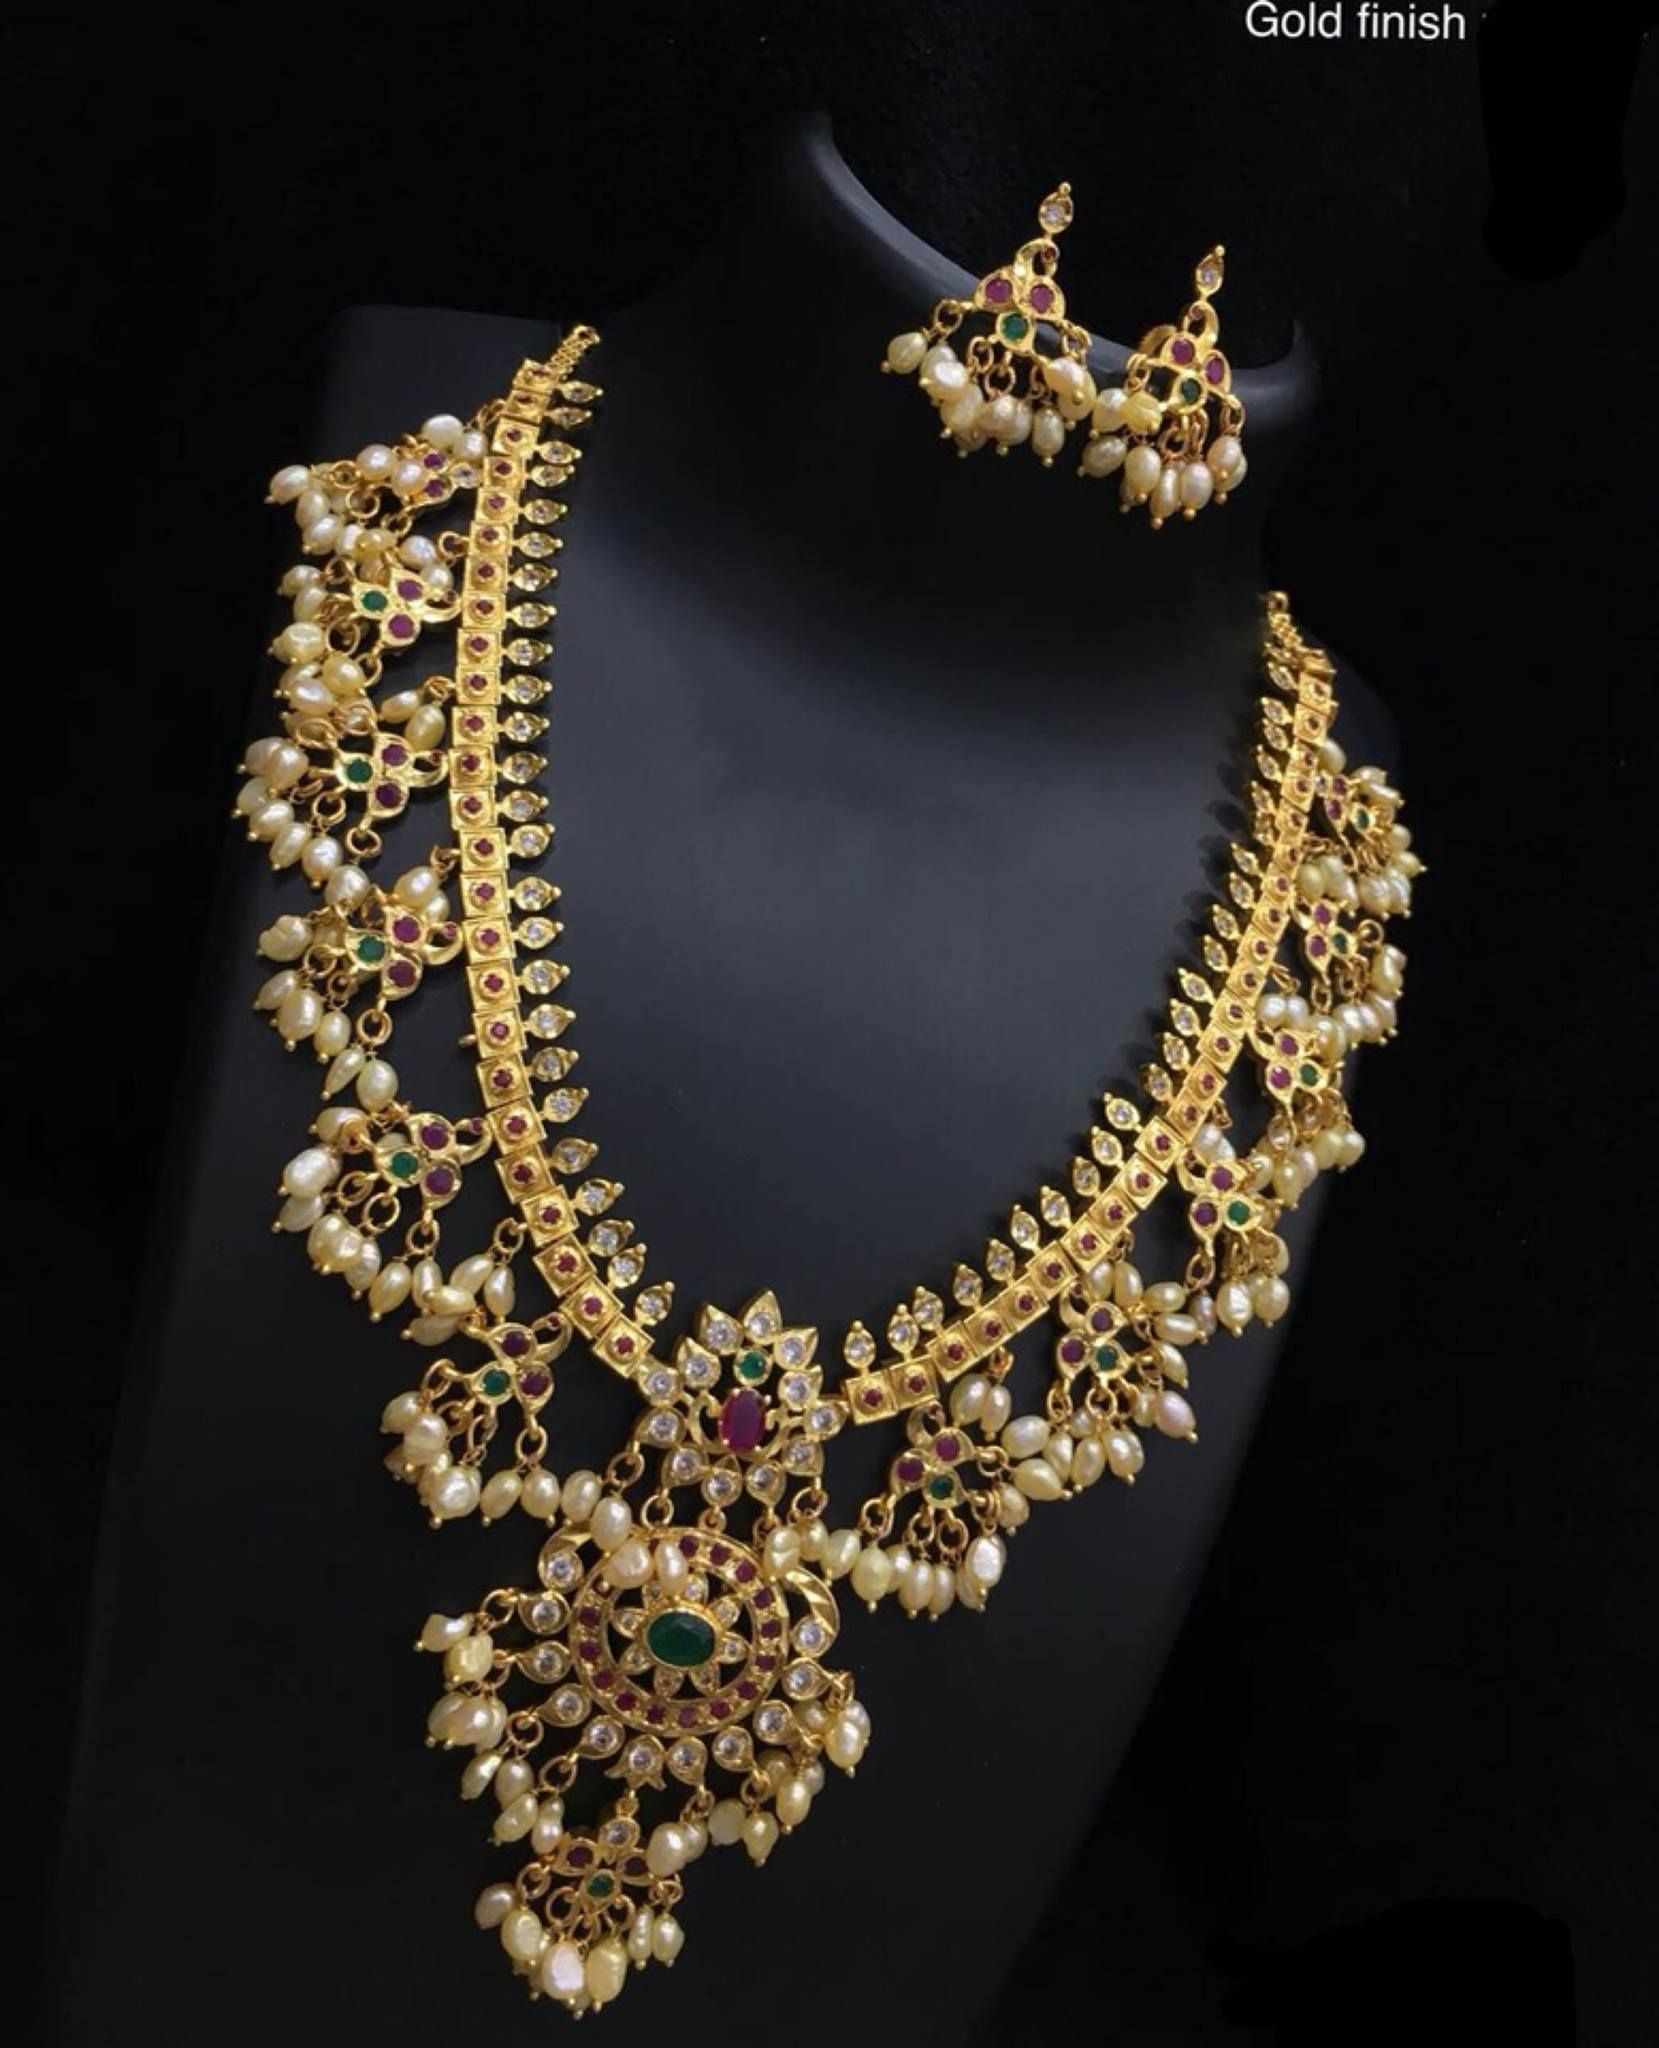 23d8069df6c4c Gutta pusalu with real rice pearls . Beautiful one gram gold ...